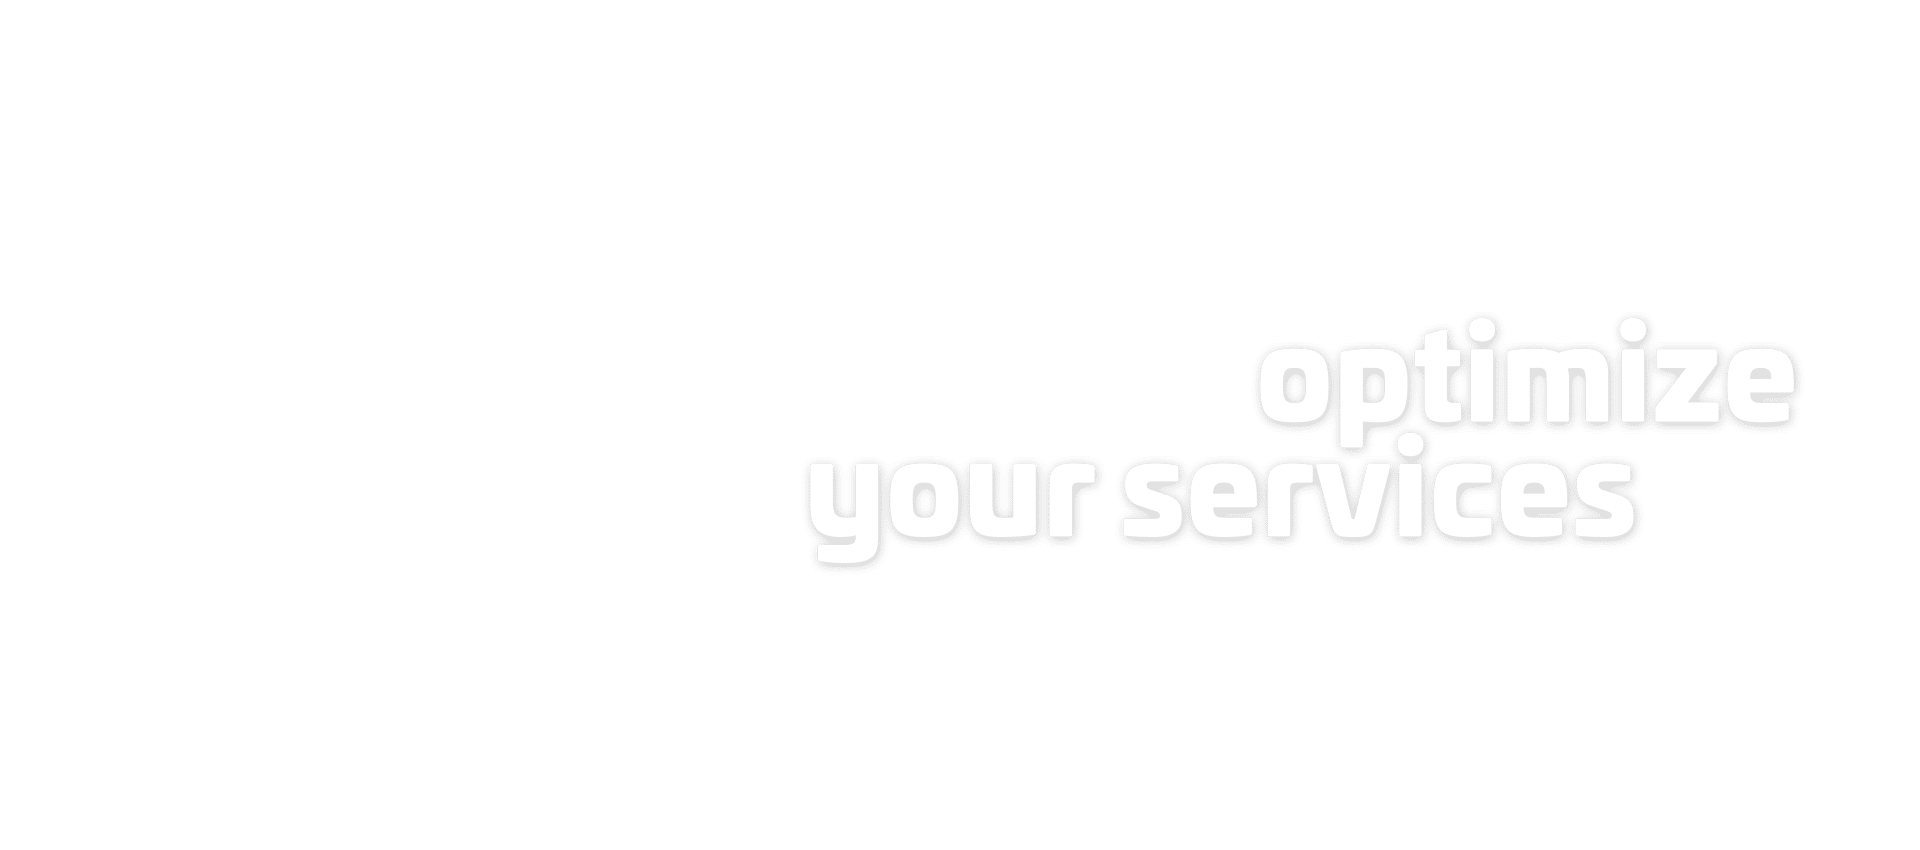 optimize your services